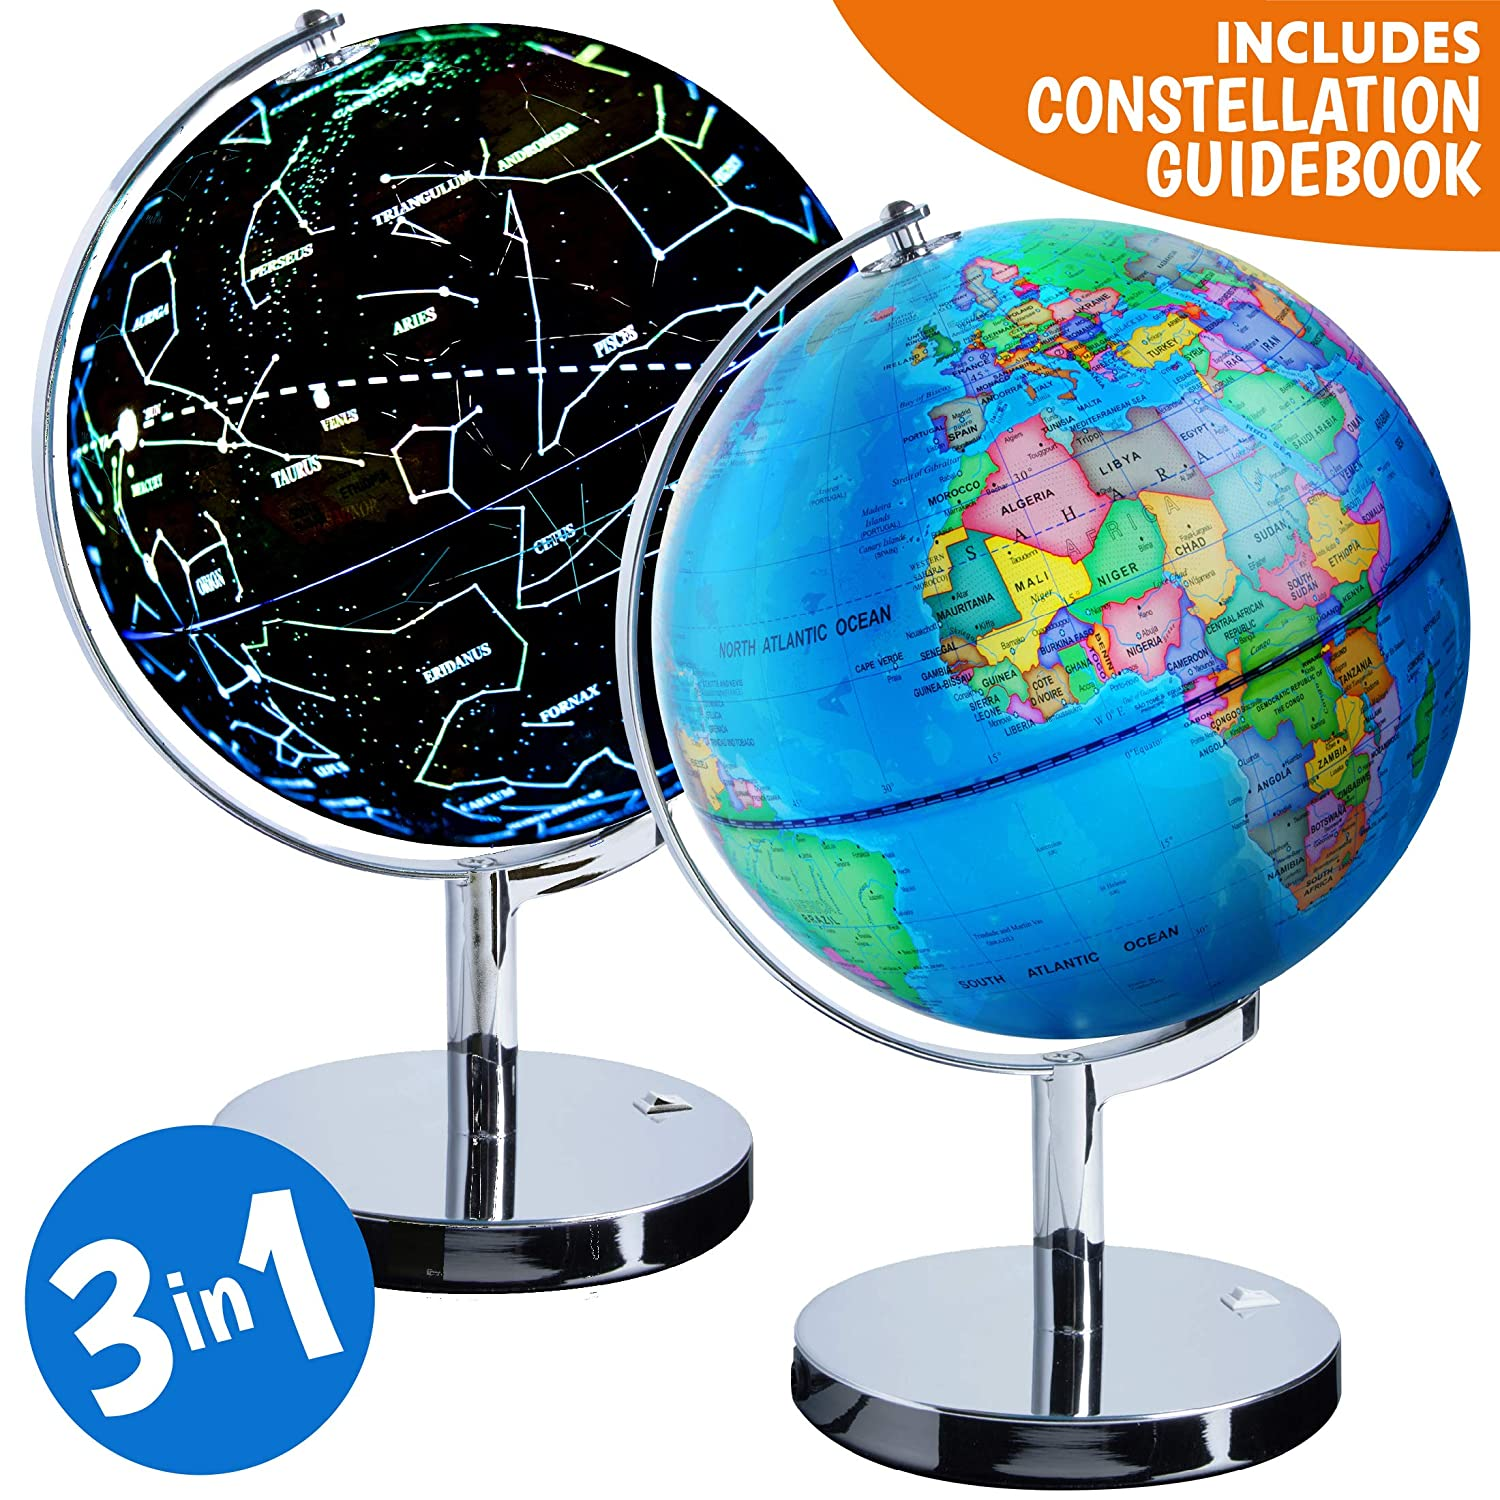 USA Toyz Illuminated Constellation World Globe for Kids - 3 in 1 Interactive Globe with Constellations, Light Up Smart Earth Globes of The World with Stand